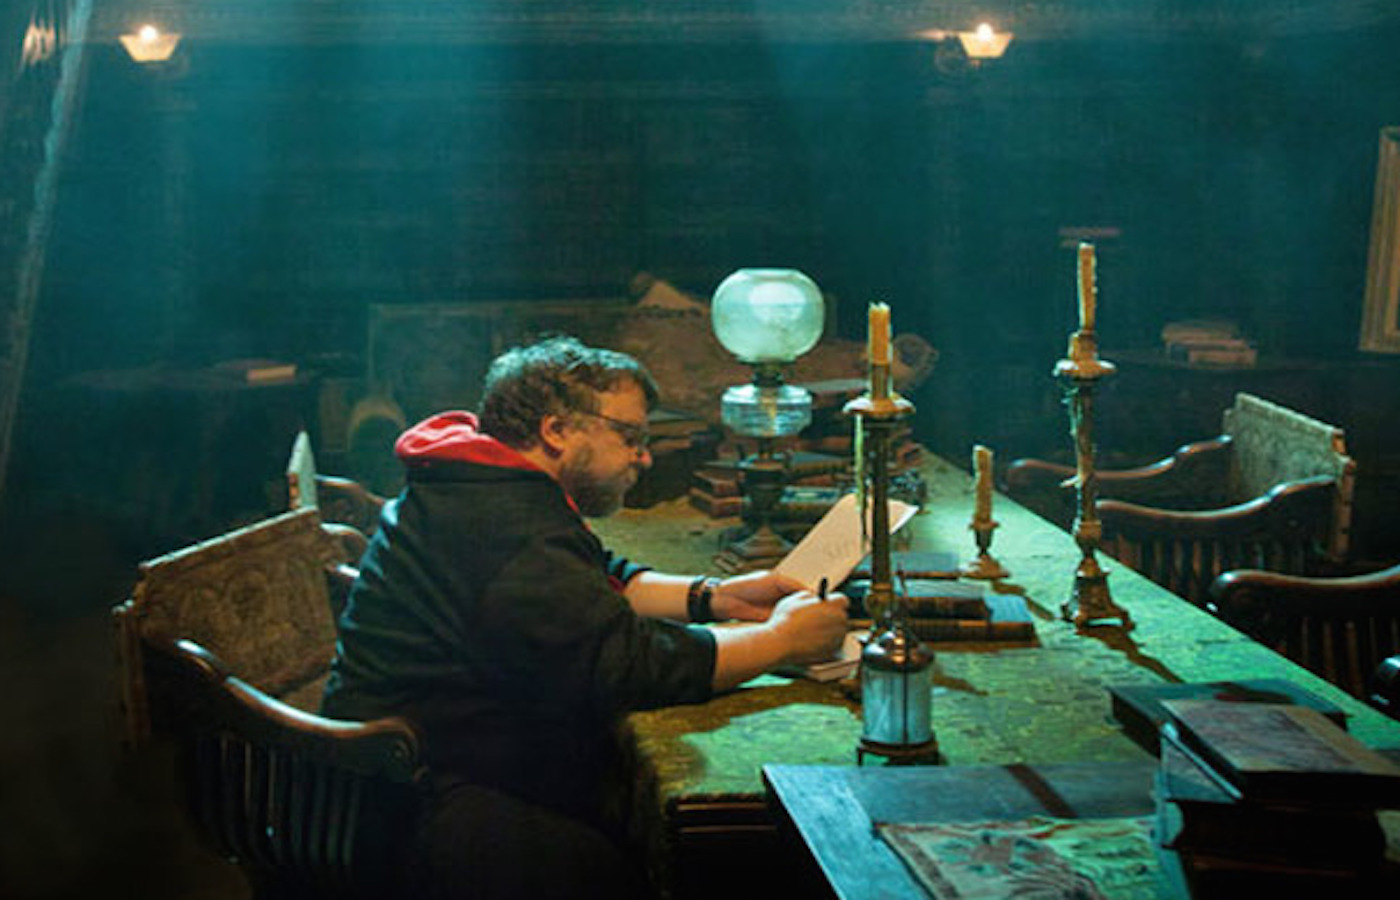 crimson-peak-guillermo-del-toro-on-set.jpg